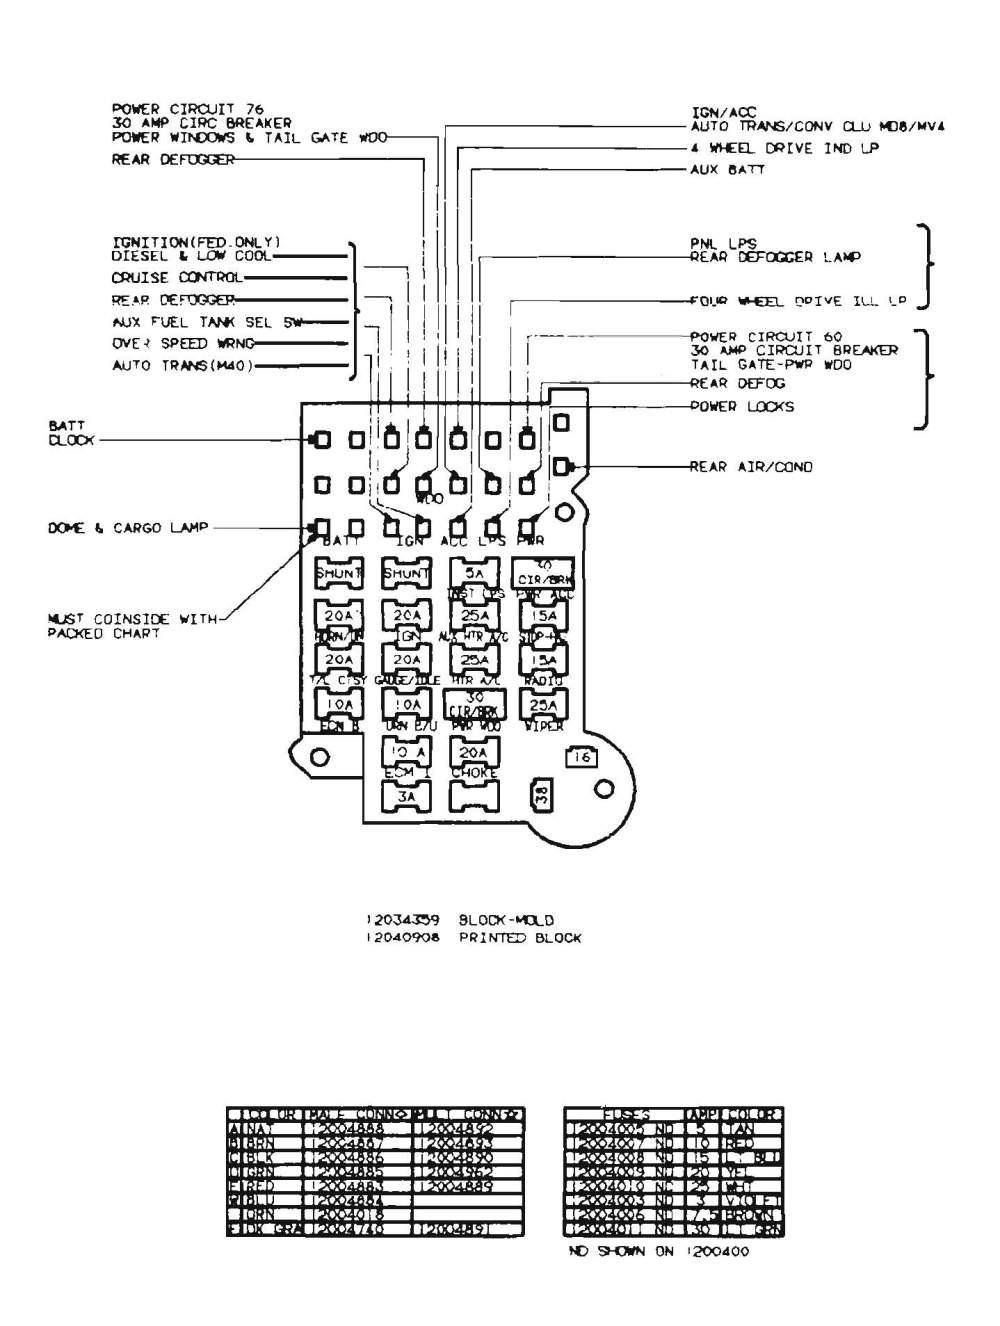 medium resolution of 1980 s10 fuse box schematic wiring diagrams chevy s10 fuse box 88 s10 fuse box